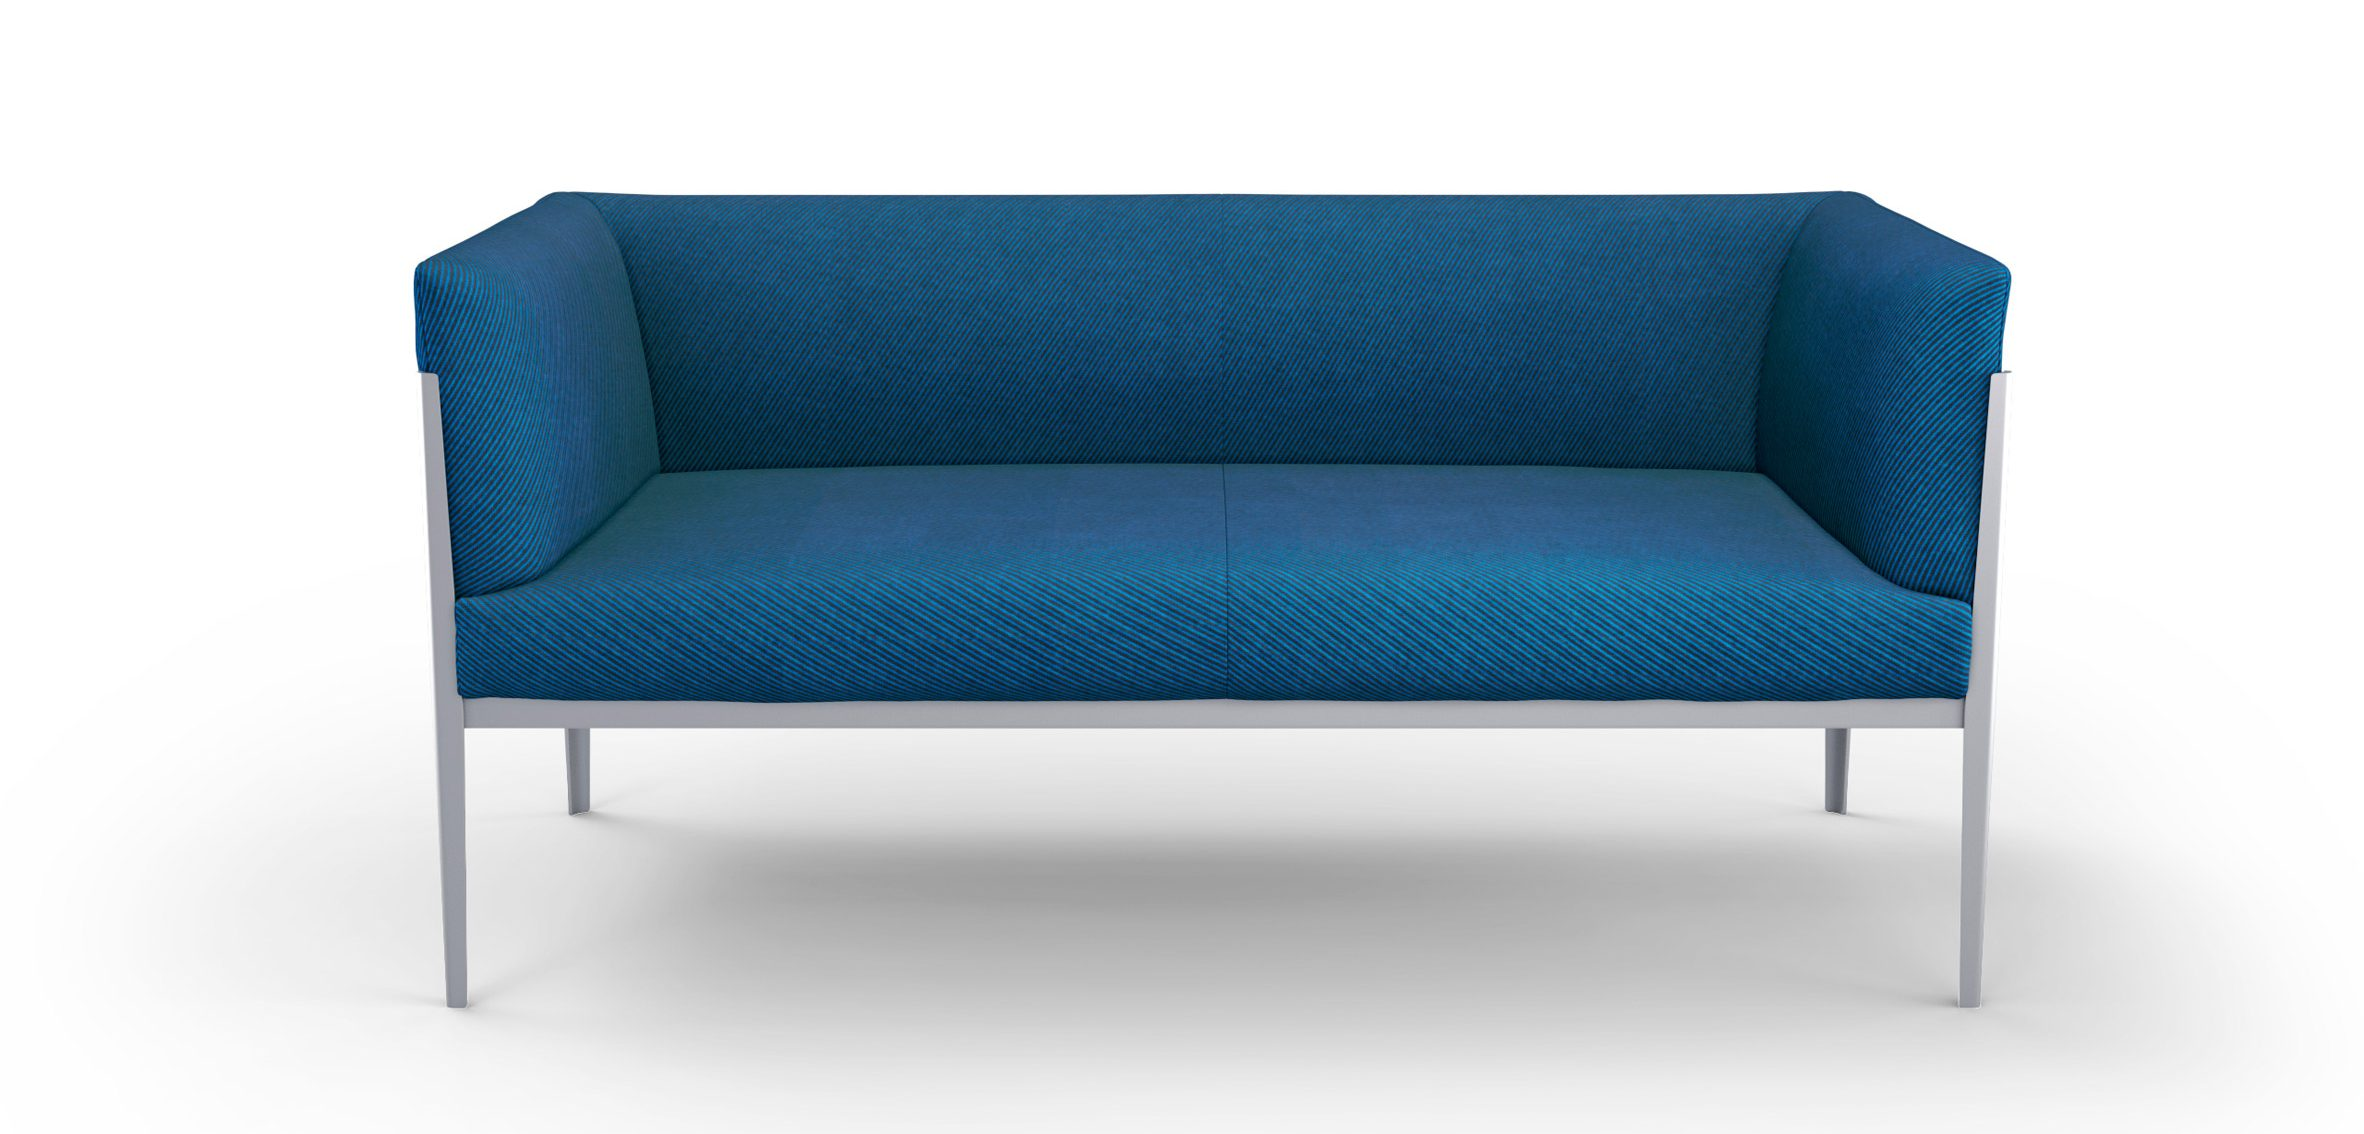 Blue sofa with a low back by Ronan and Erwan Bouroullec for Cassina